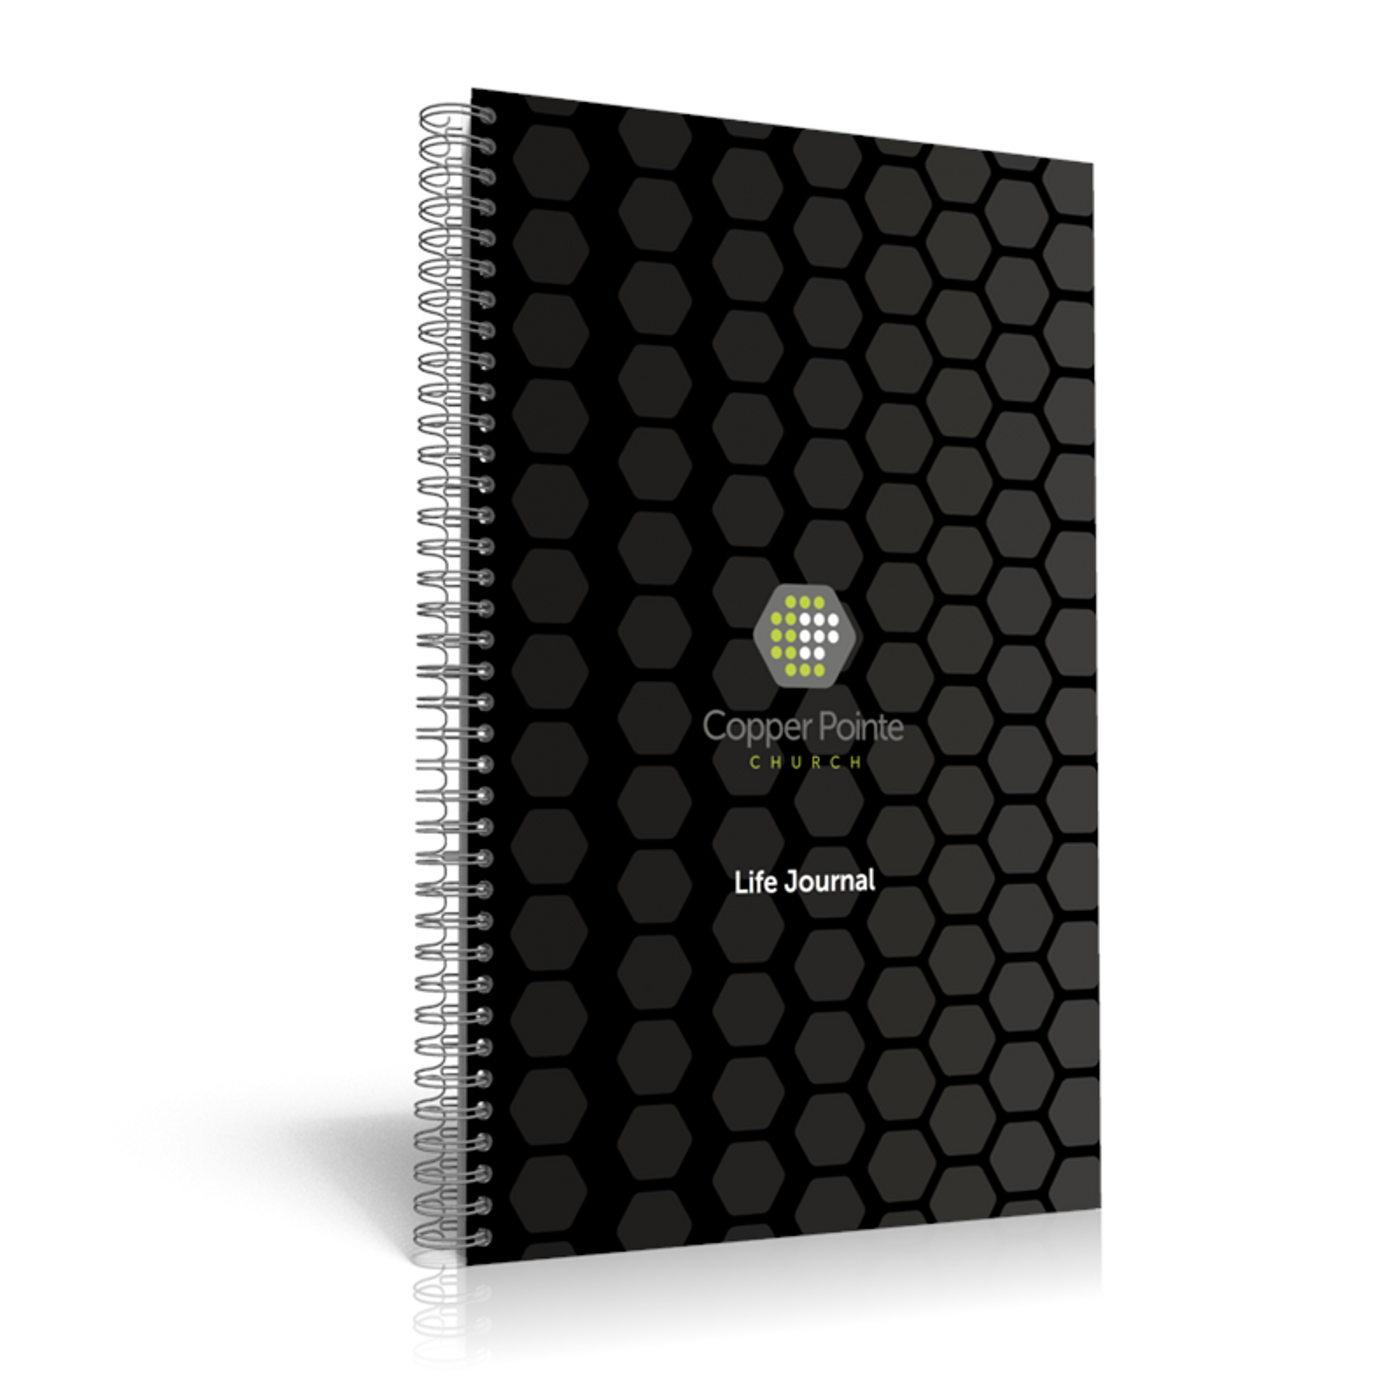 Custom Life Journal - Cover, Title Page, & 3 2-sided Pages